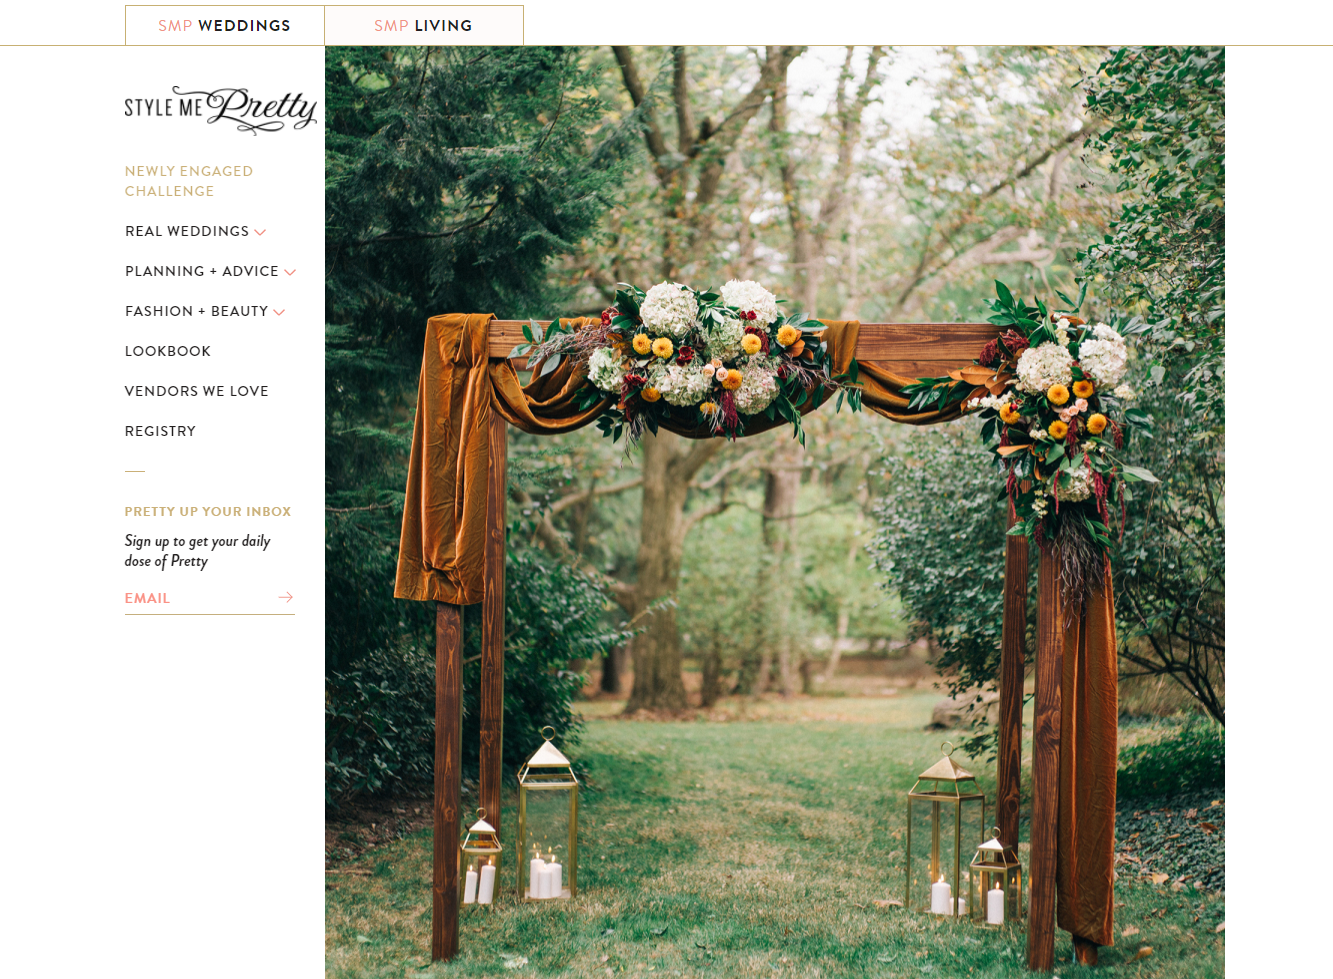 Style me Pretty 2018 - Pittsburgh Wedding.png